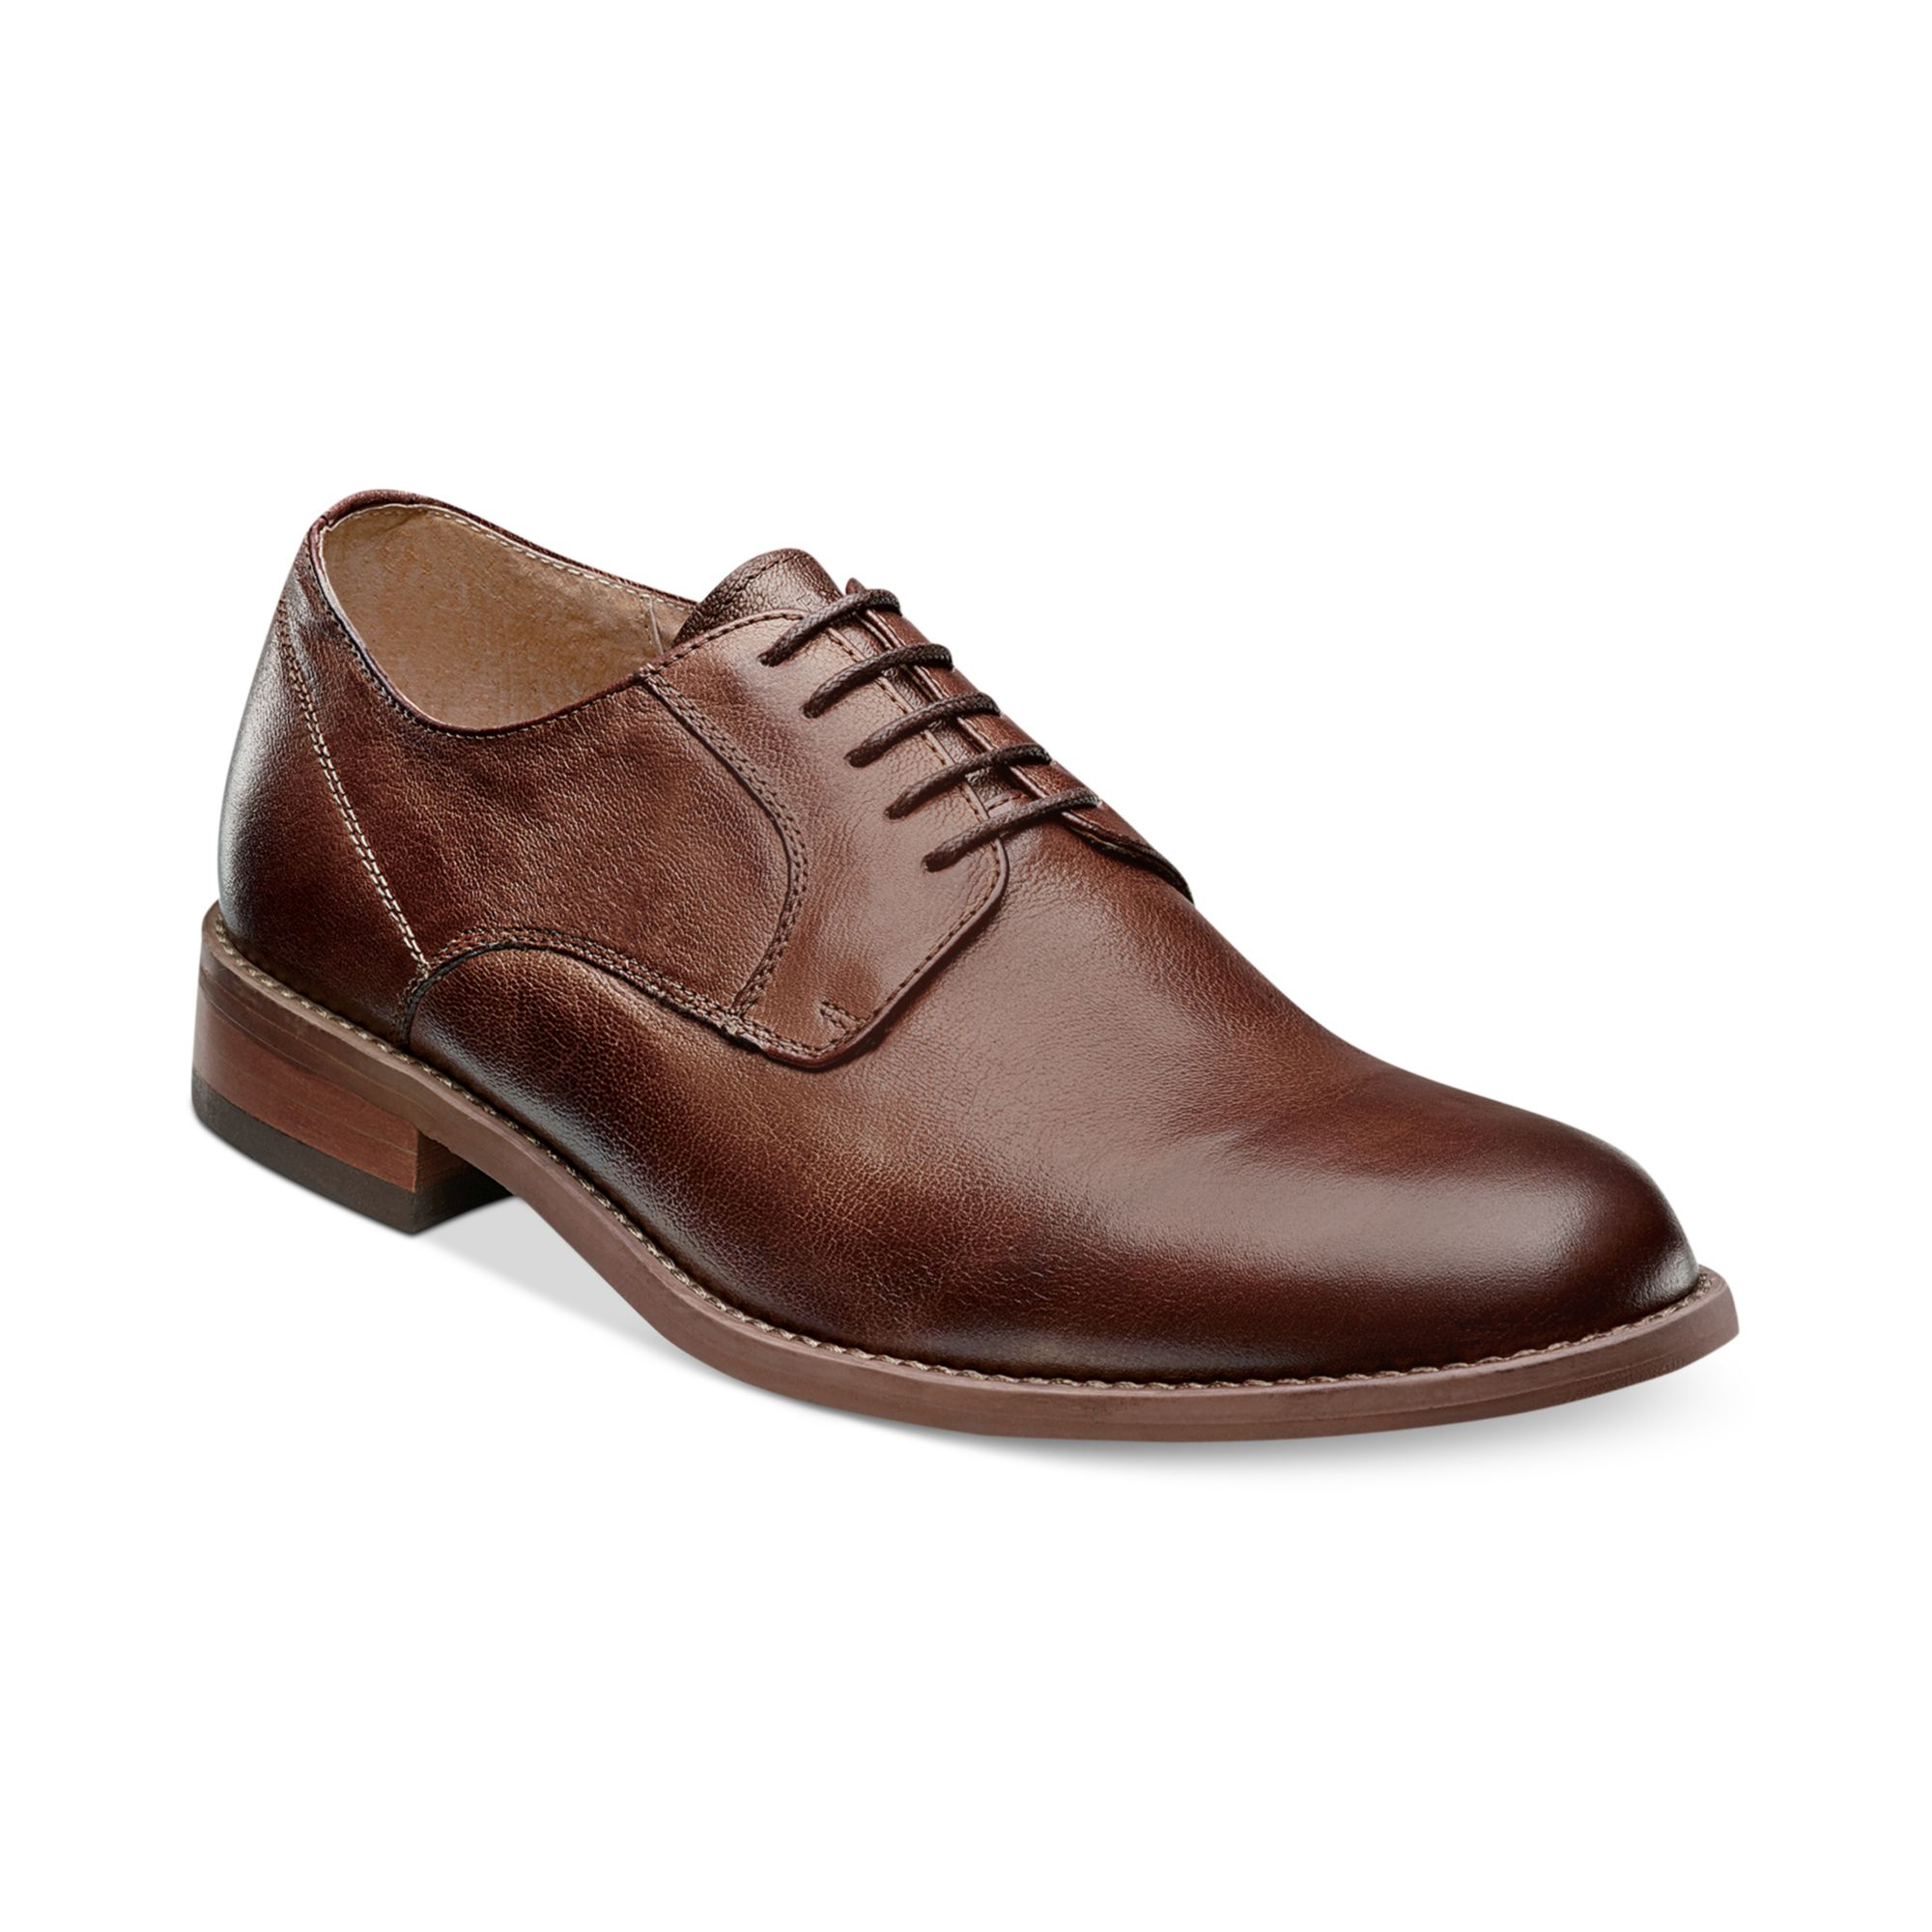 Wingtip Boots Mens Images Decorating Ideas Style Shoes